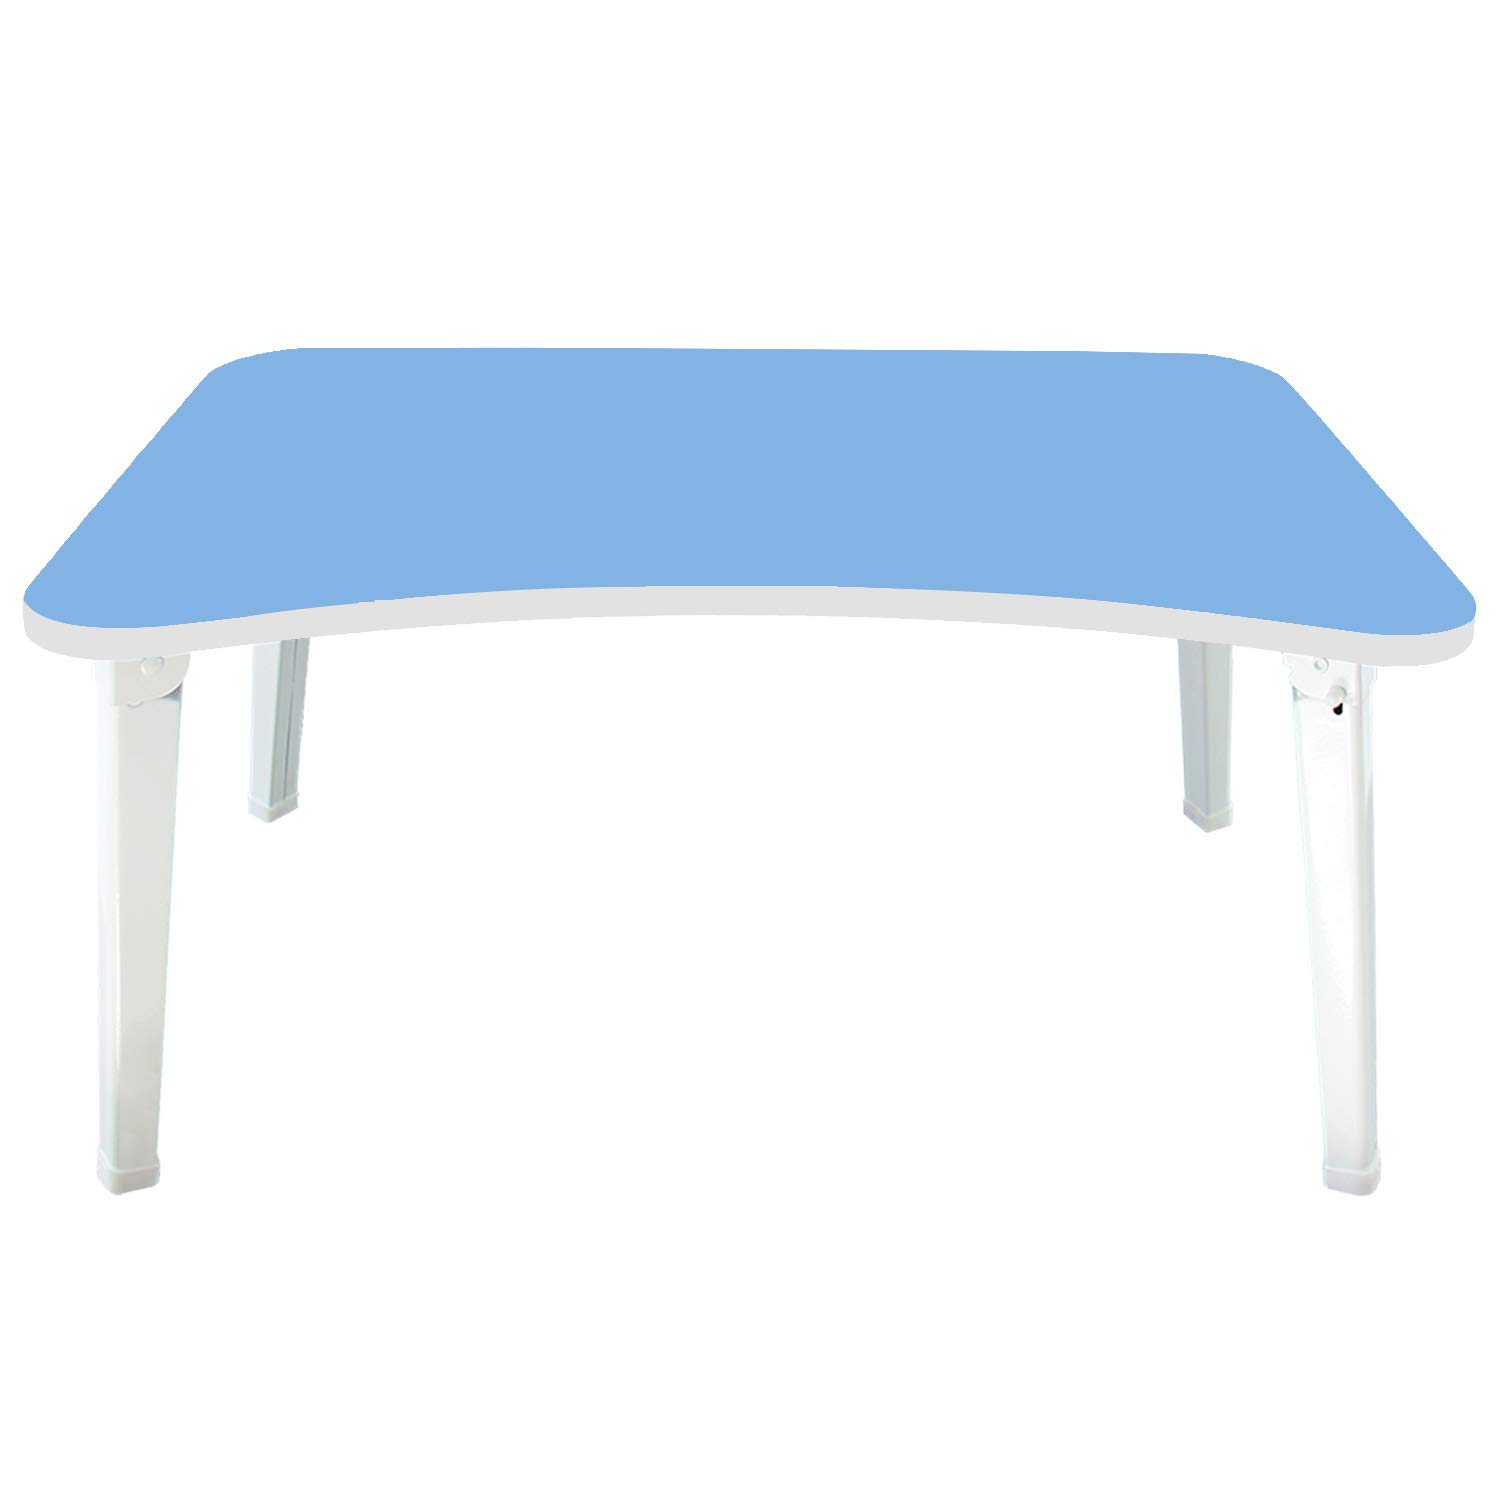 DL furniture -Large Foldable Bed Tray Lap Desk, Perfect for Watching Movie on Bed or as Personal Dinning Table   Blue